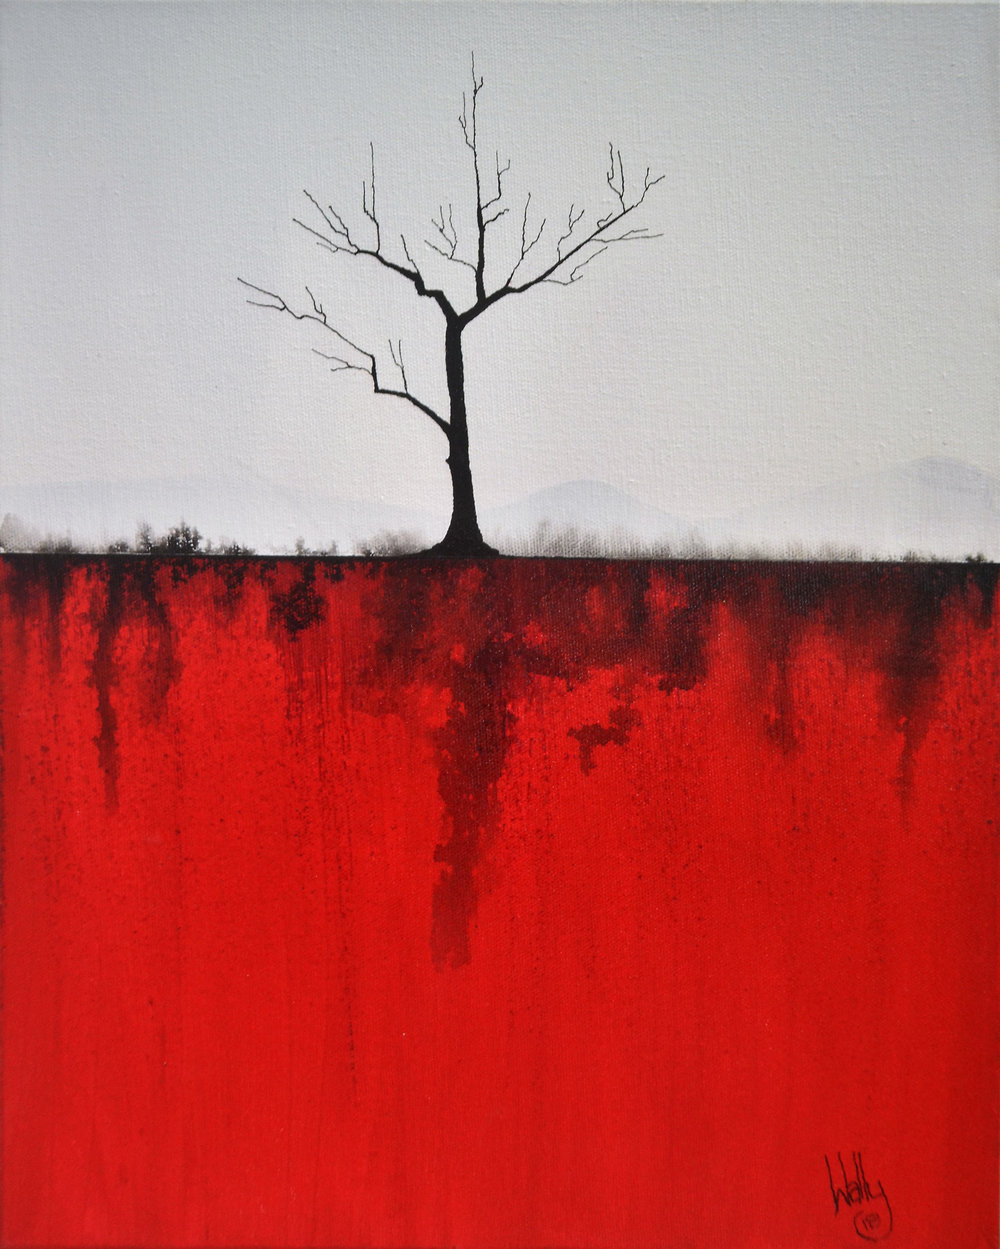 Barren Red 660 (click to expand)  Wally Pritchard, acrylic on canvas, 305mm x 410mm  $325.00